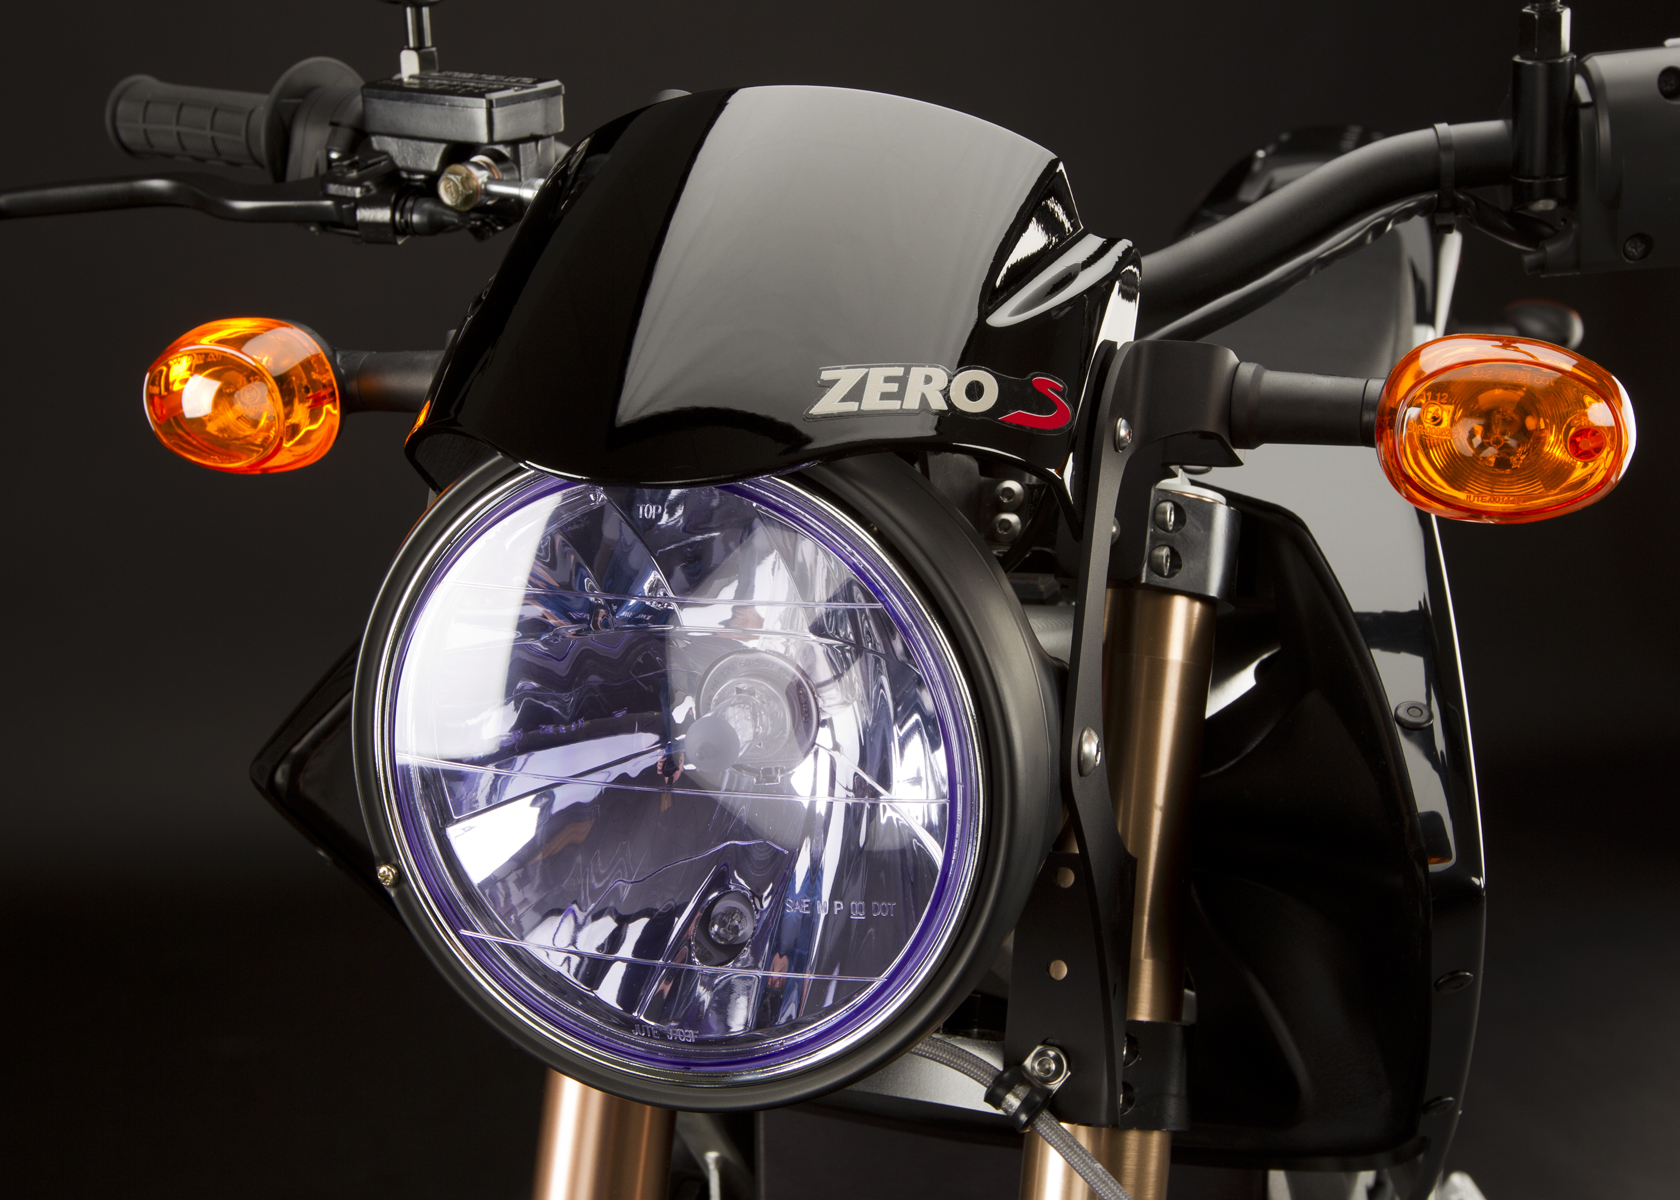 2011 Zero S Electric Motorcycle: Headlight